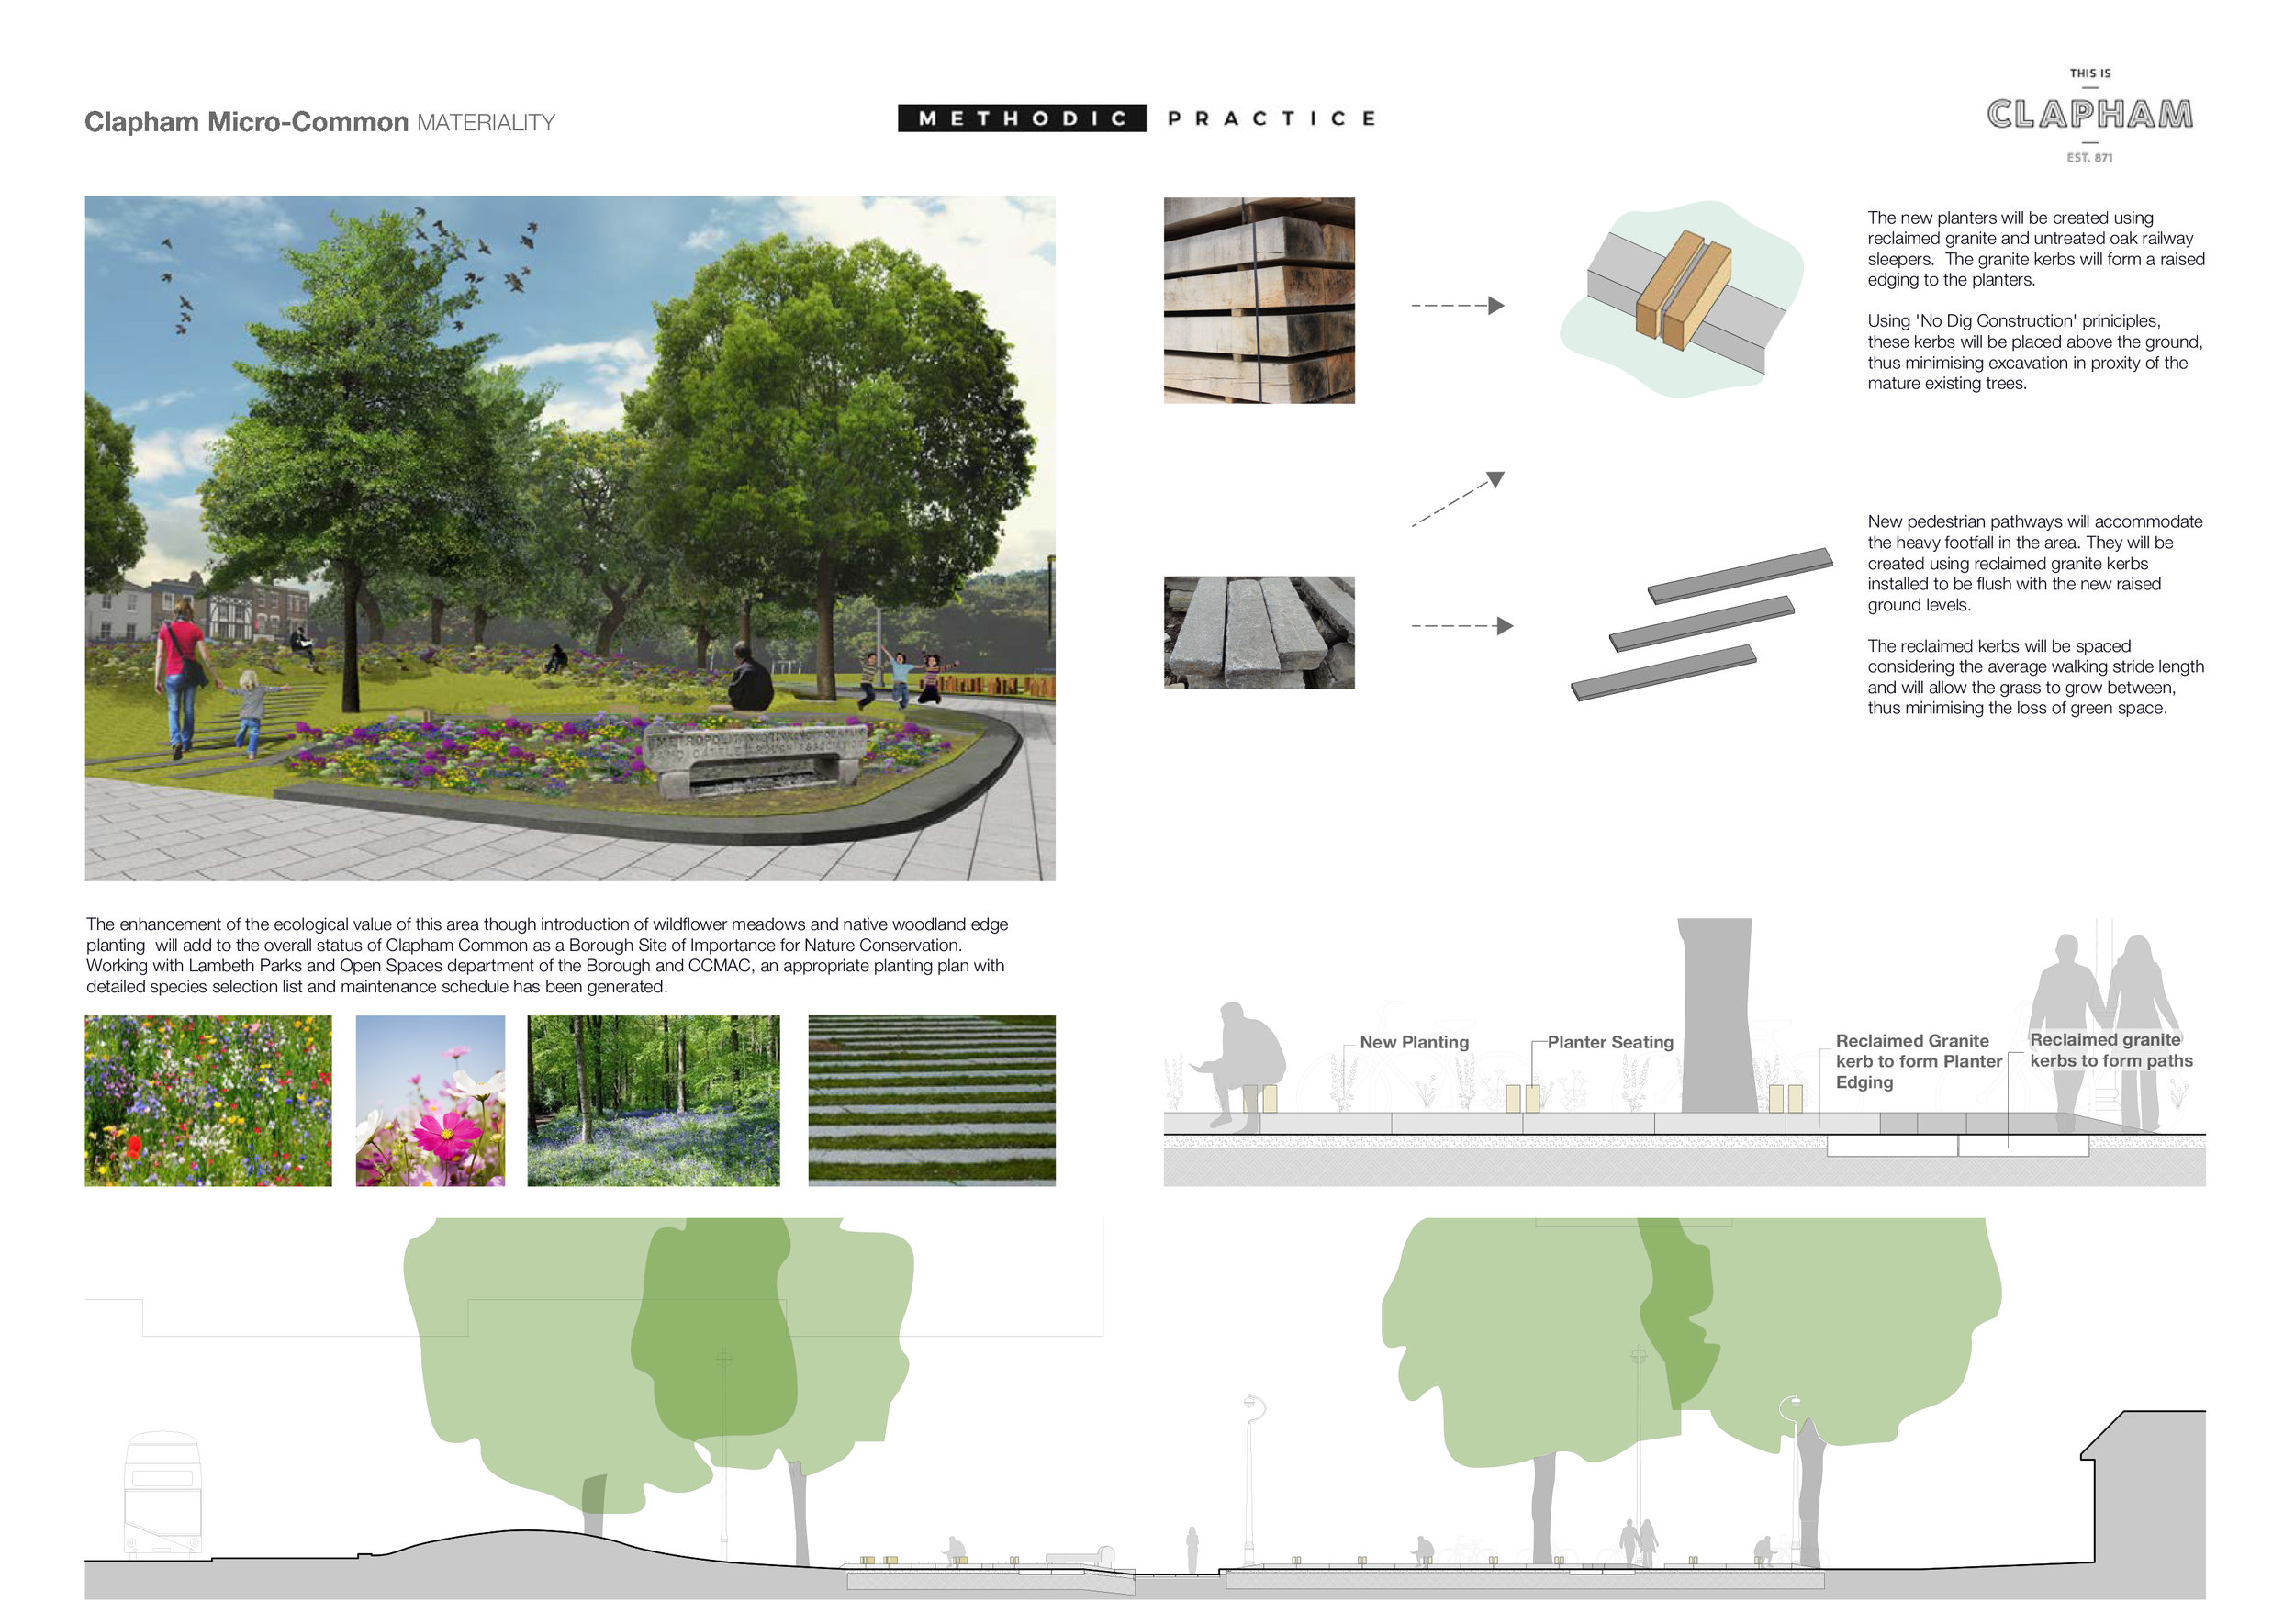 MicroCommon-Materiality-Greener-City-Fund-sml2.jpg